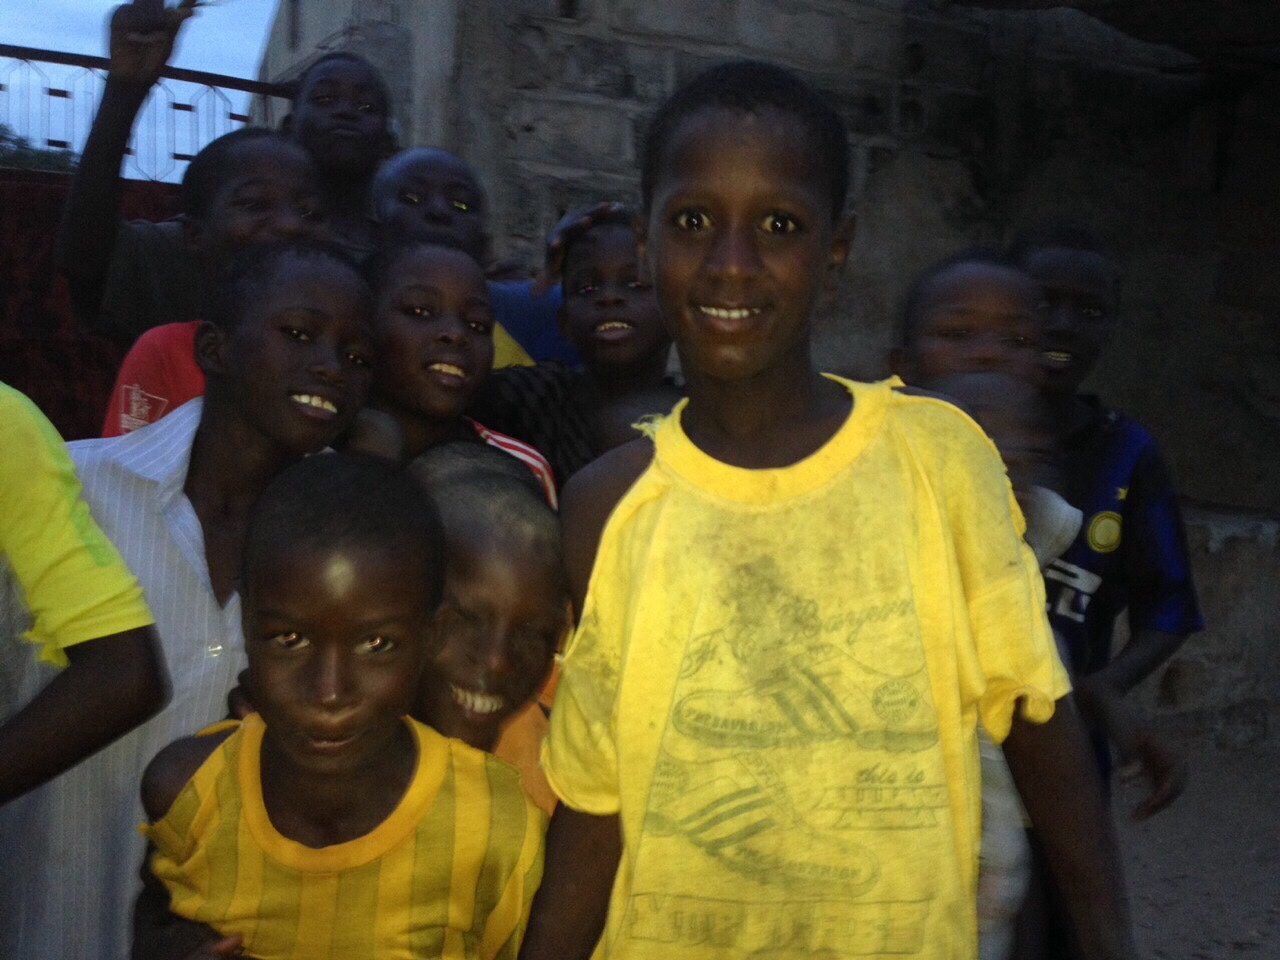 Children of the Cisse Niass Project